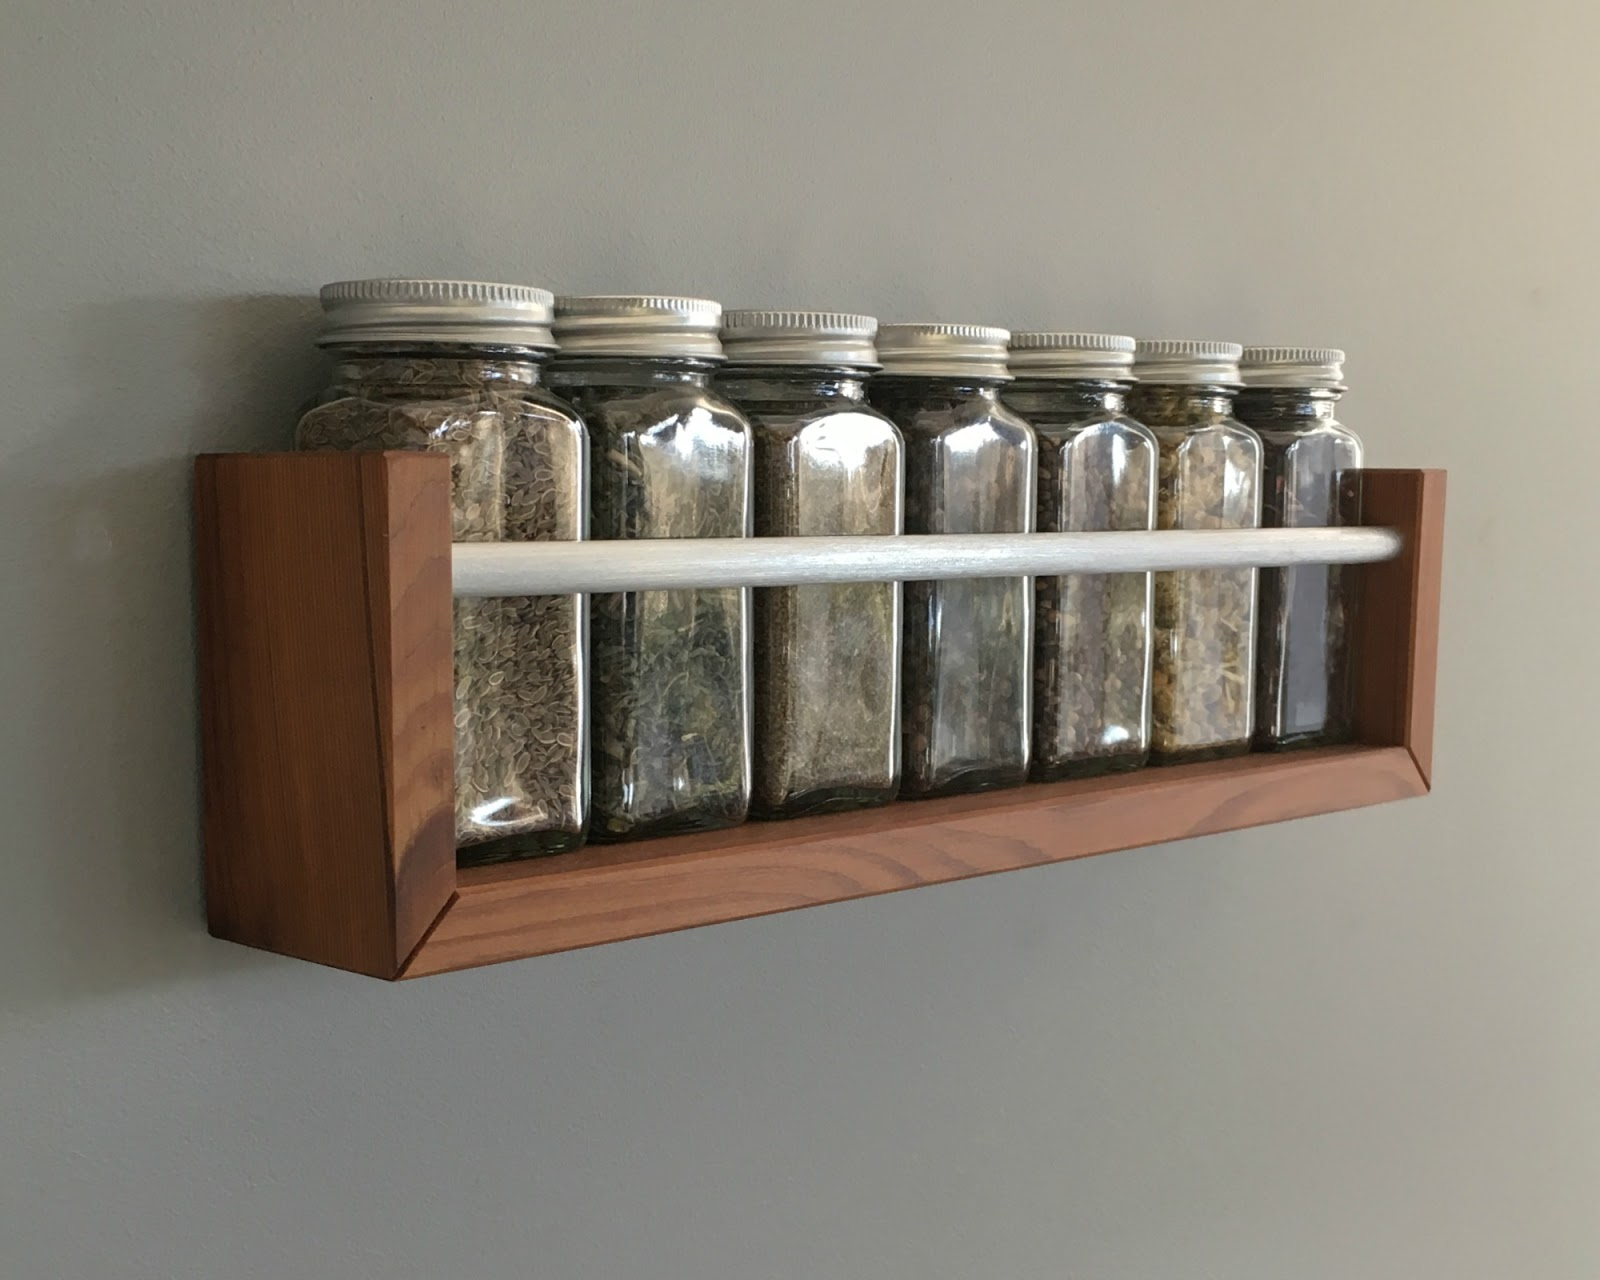 Wall Modern Spice Rack of Reclaimed Medium Tone Wood with Brushed Metal  Front Bar, For Seven Jars